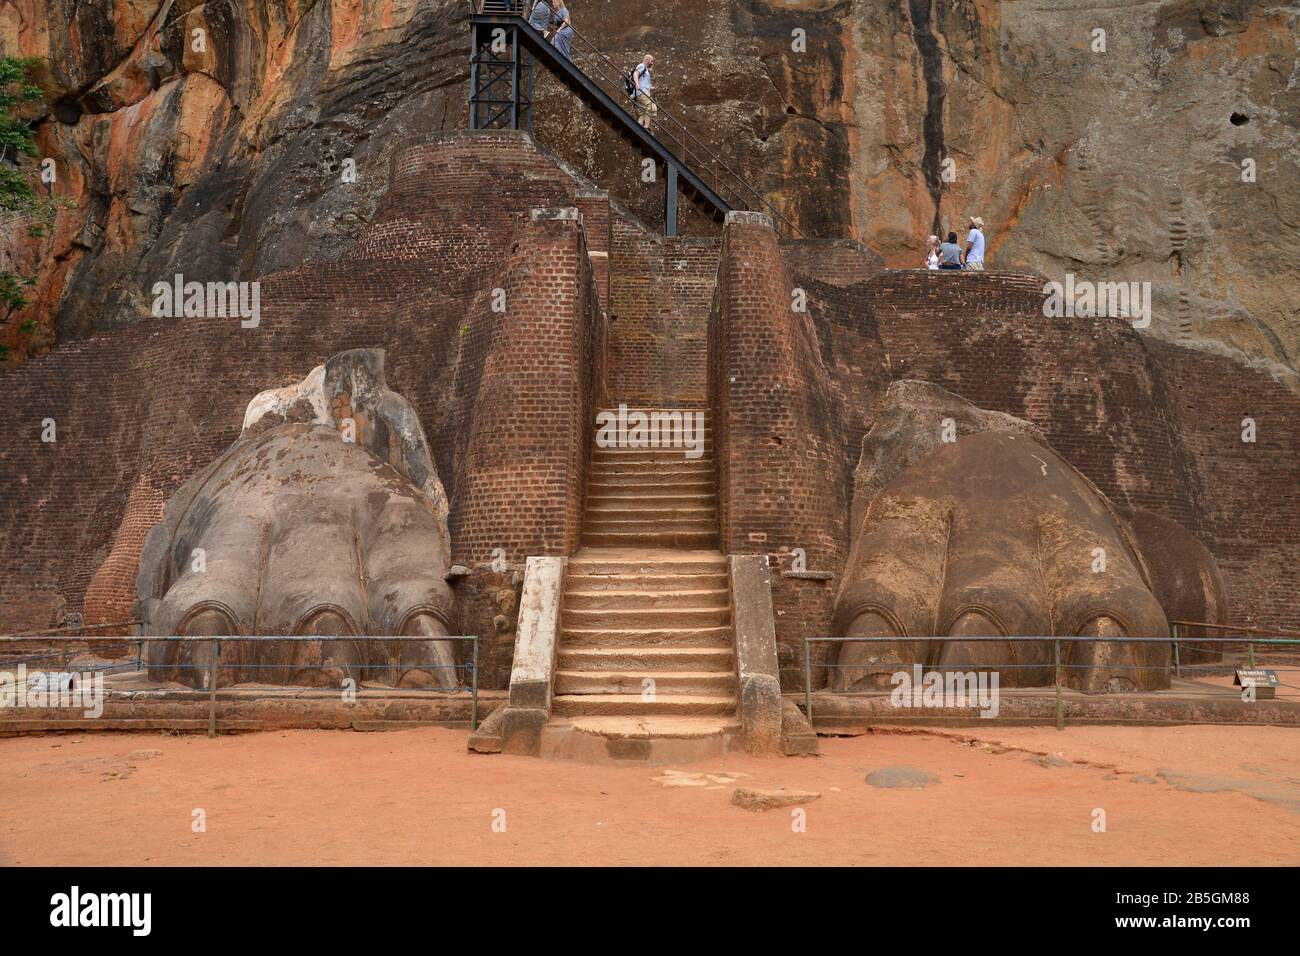 Treppe, Loewenfelsen, Sigiriya, Sri Lanka Stock Photo